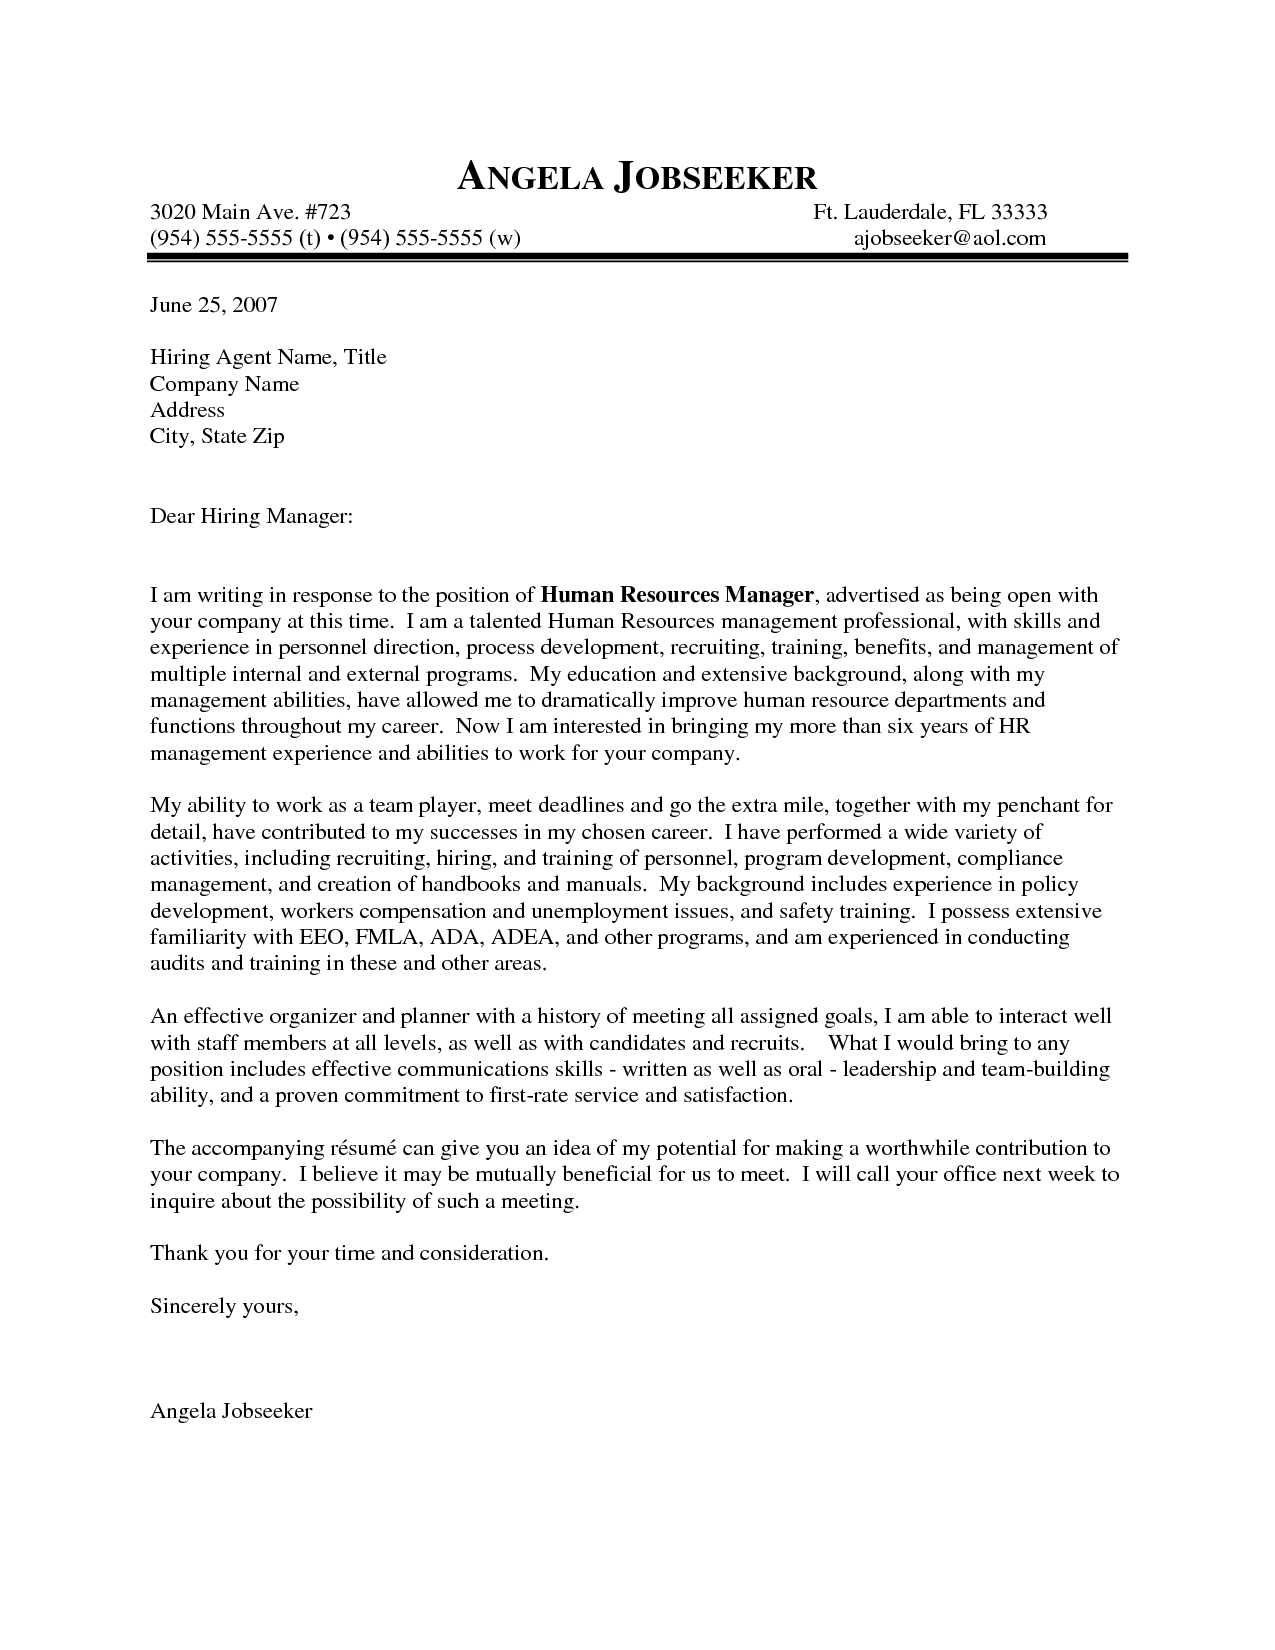 Great Outstanding Cover Letter Examples | HR Manager Cover Letter Example